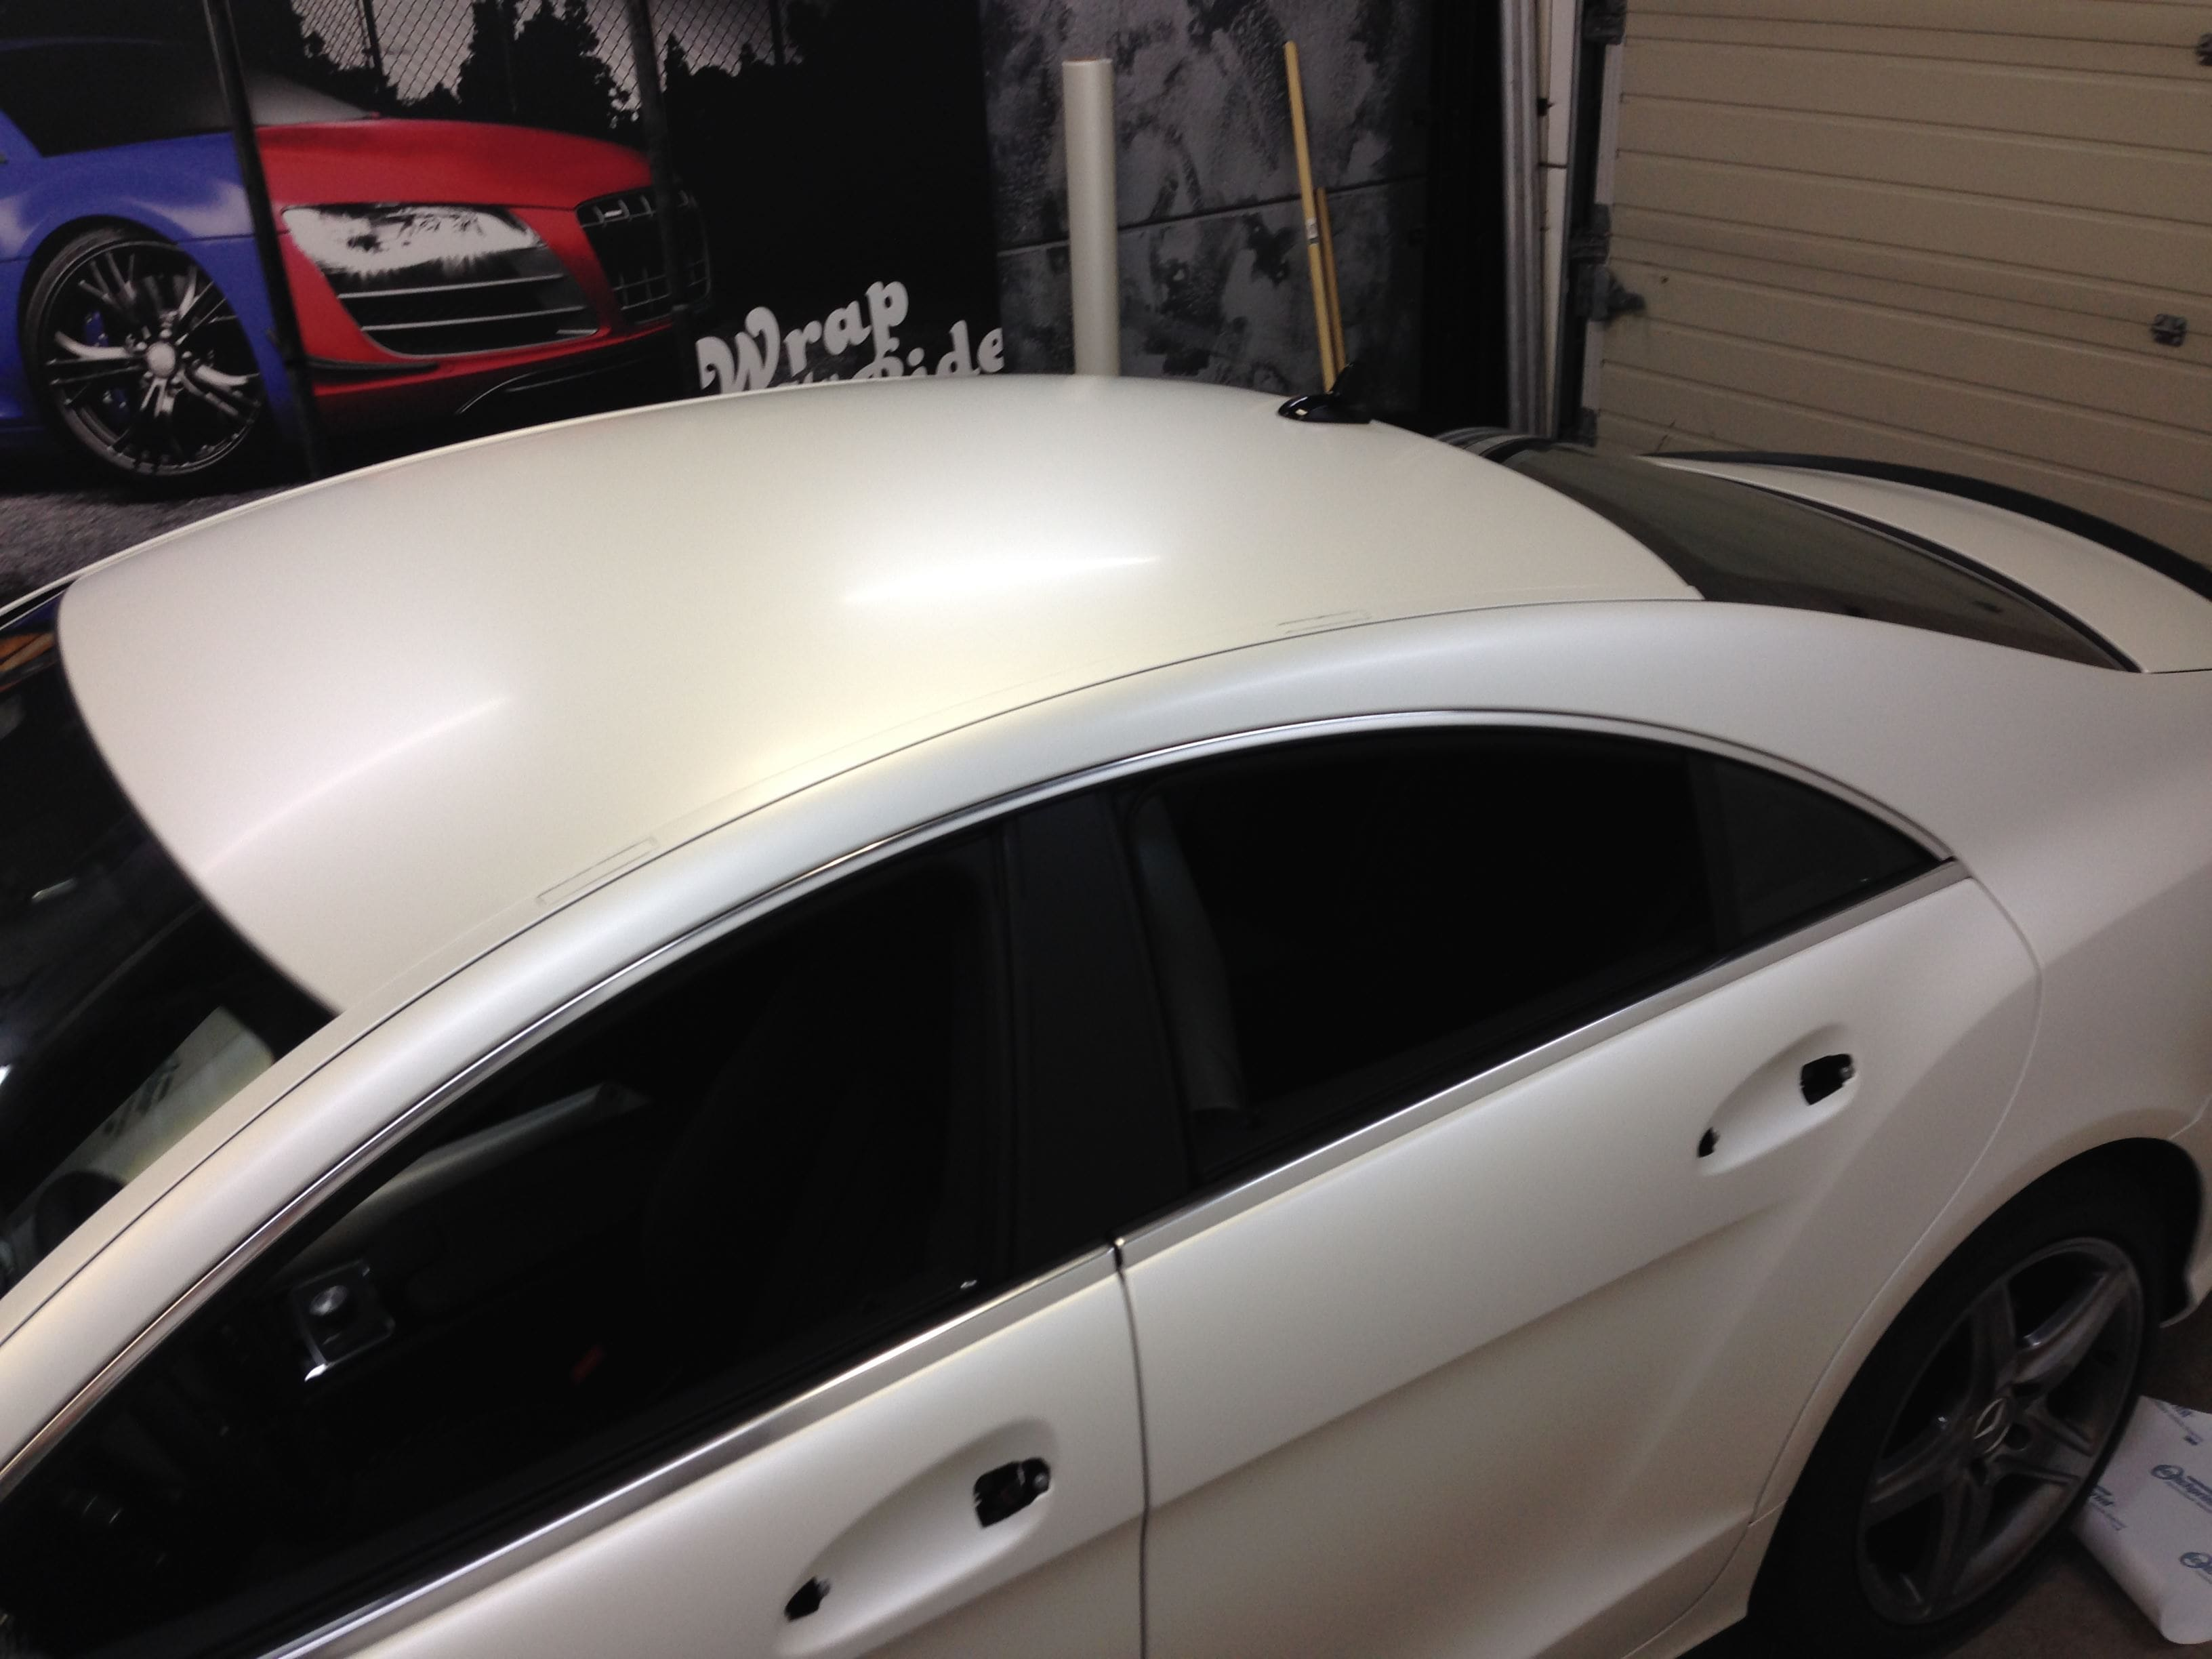 Mercedes CLS met White Satin Pearl Wrap, Carwrapping door Wrapmyride.nu Foto-nr:6195, ©2020